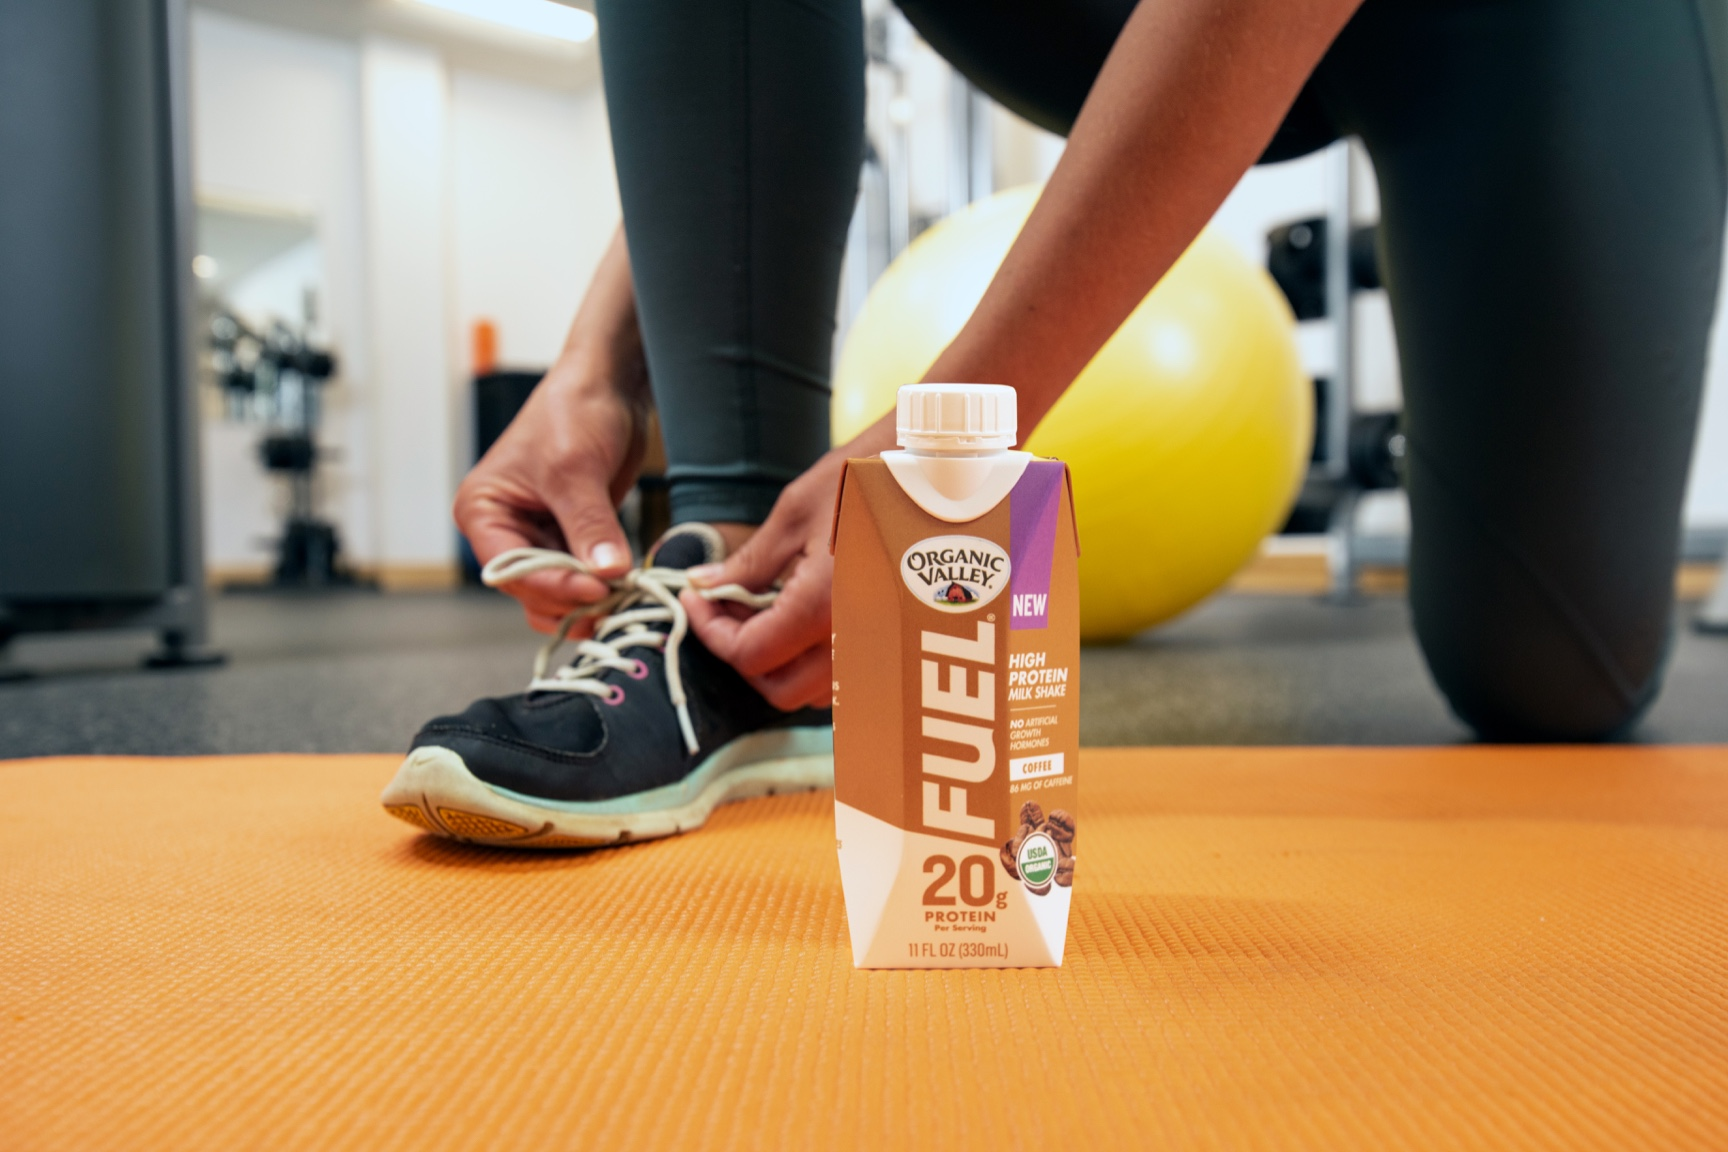 A woman in a gym ties her shoe with a carton of Organic Valley Fuel beside her.